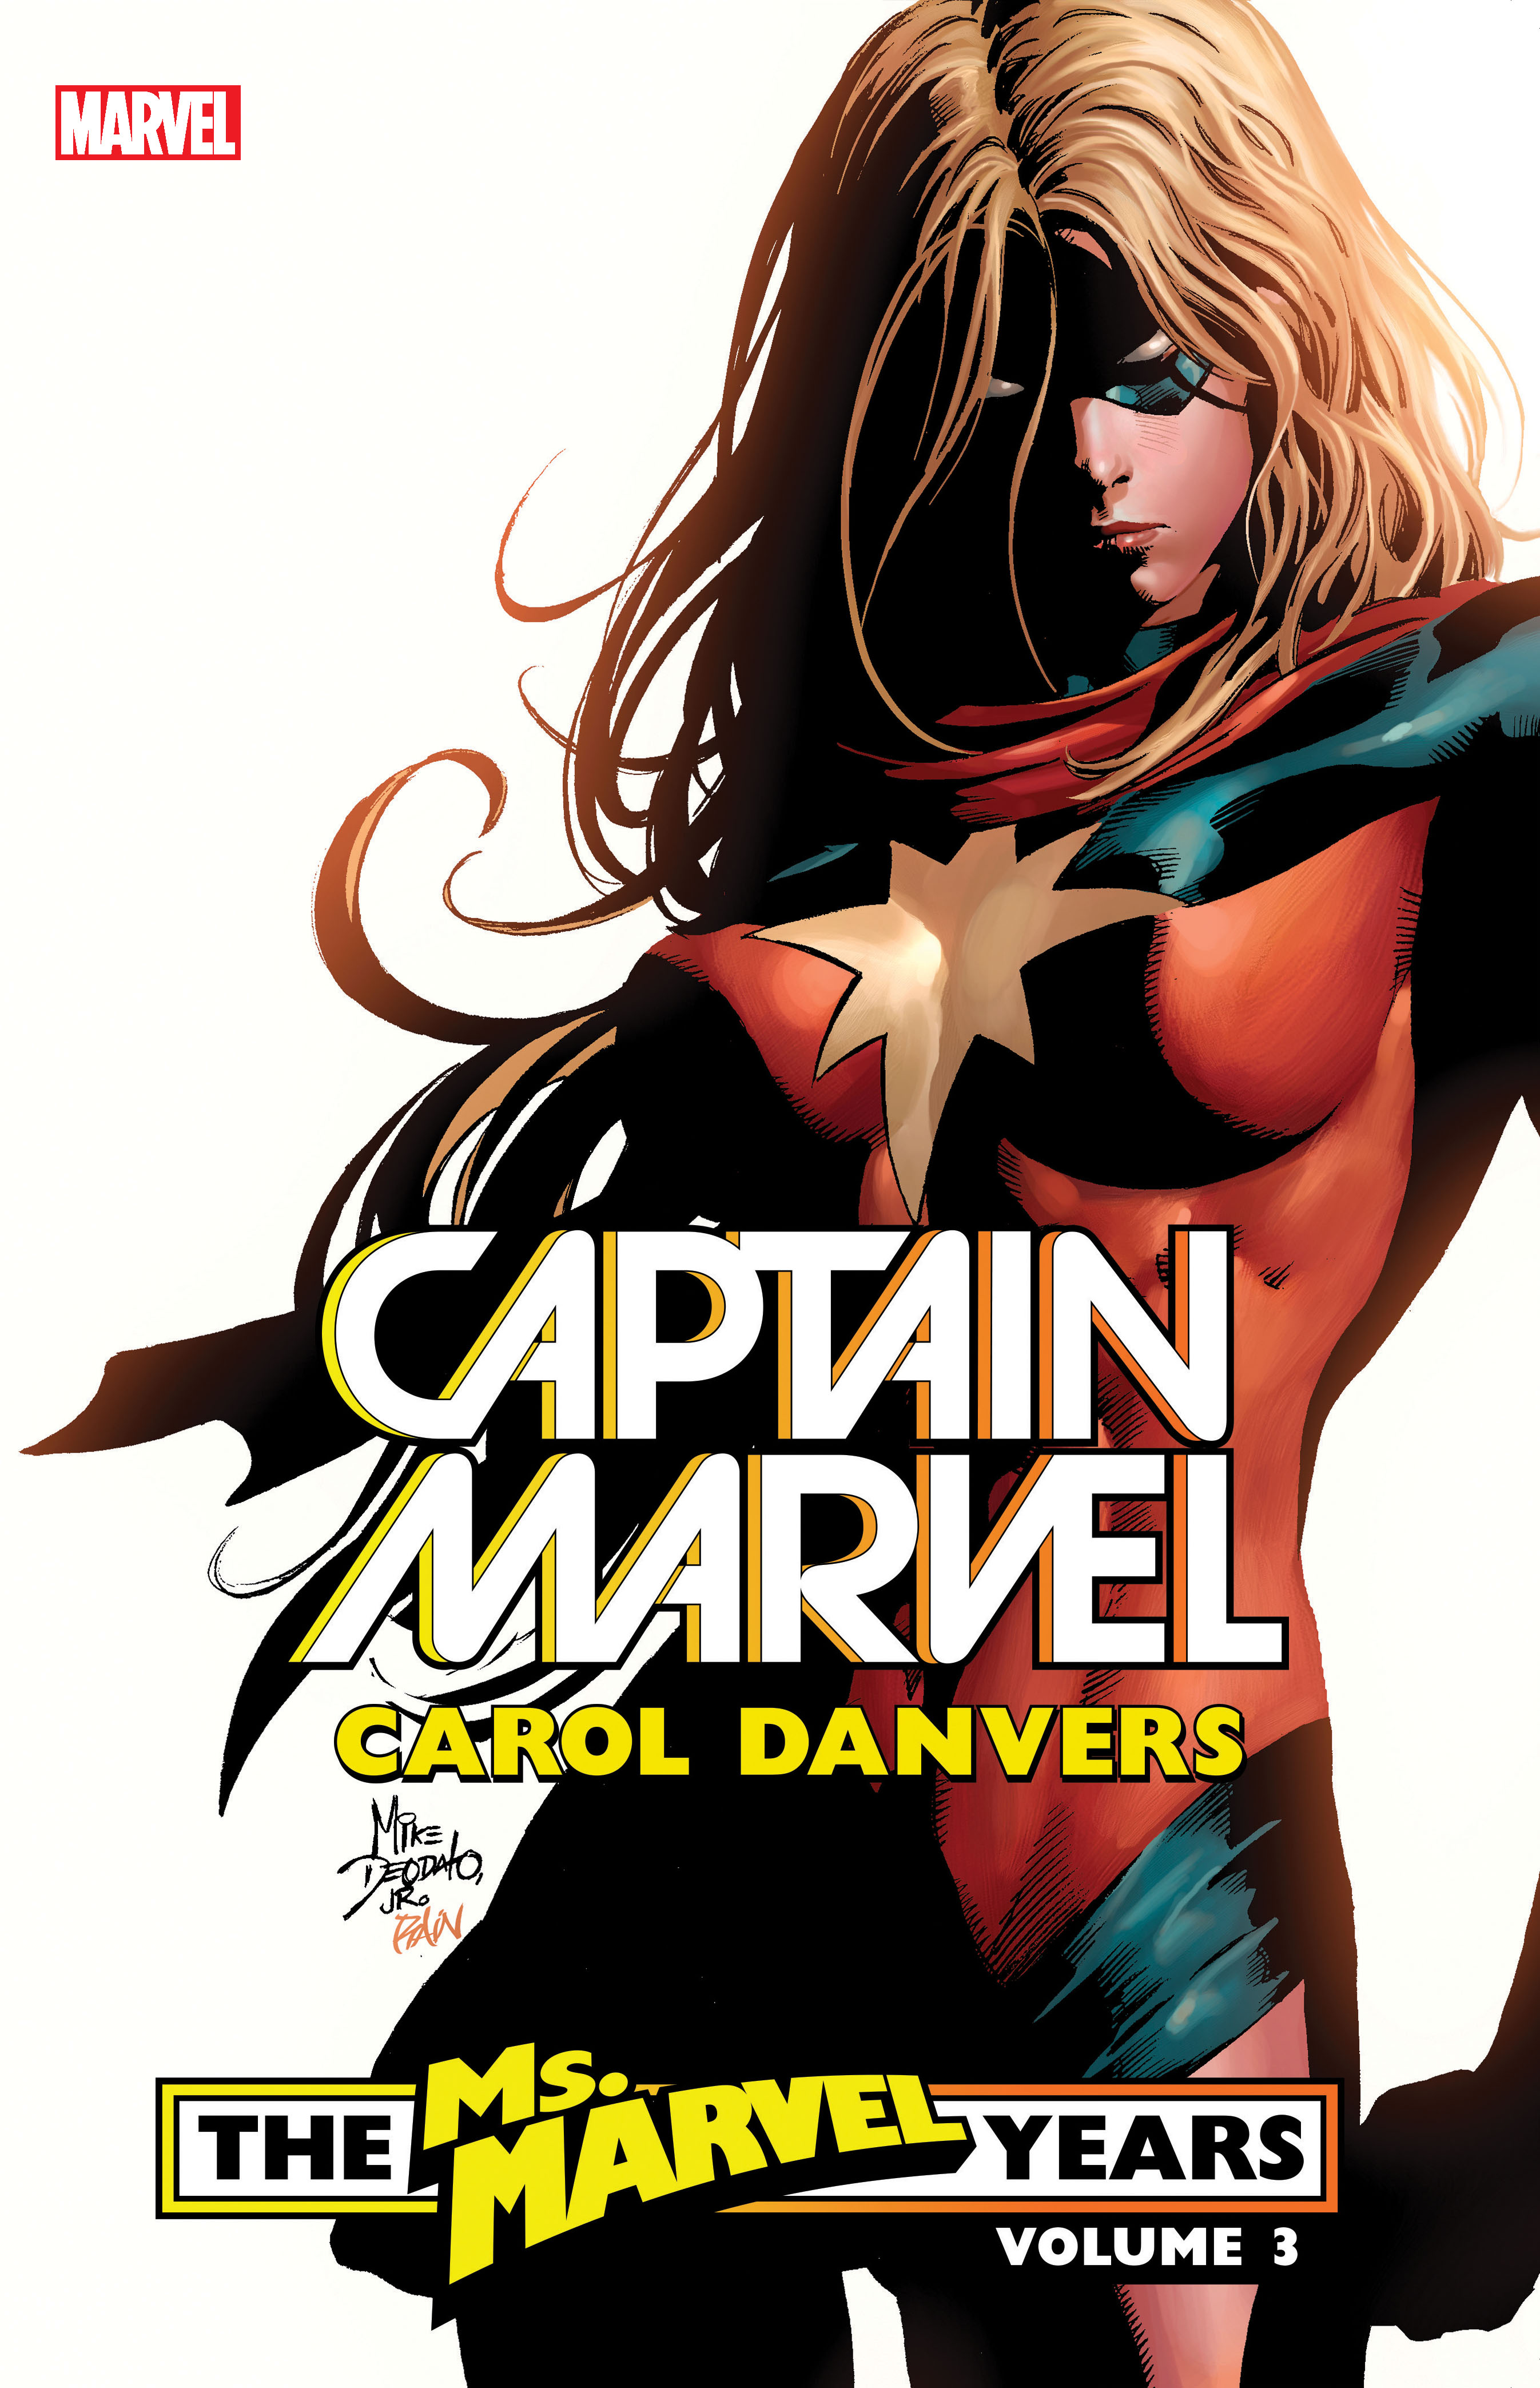 Captain Marvel: Carol Danvers - The Ms. Marvel Years Vol. 3  (Trade Paperback)